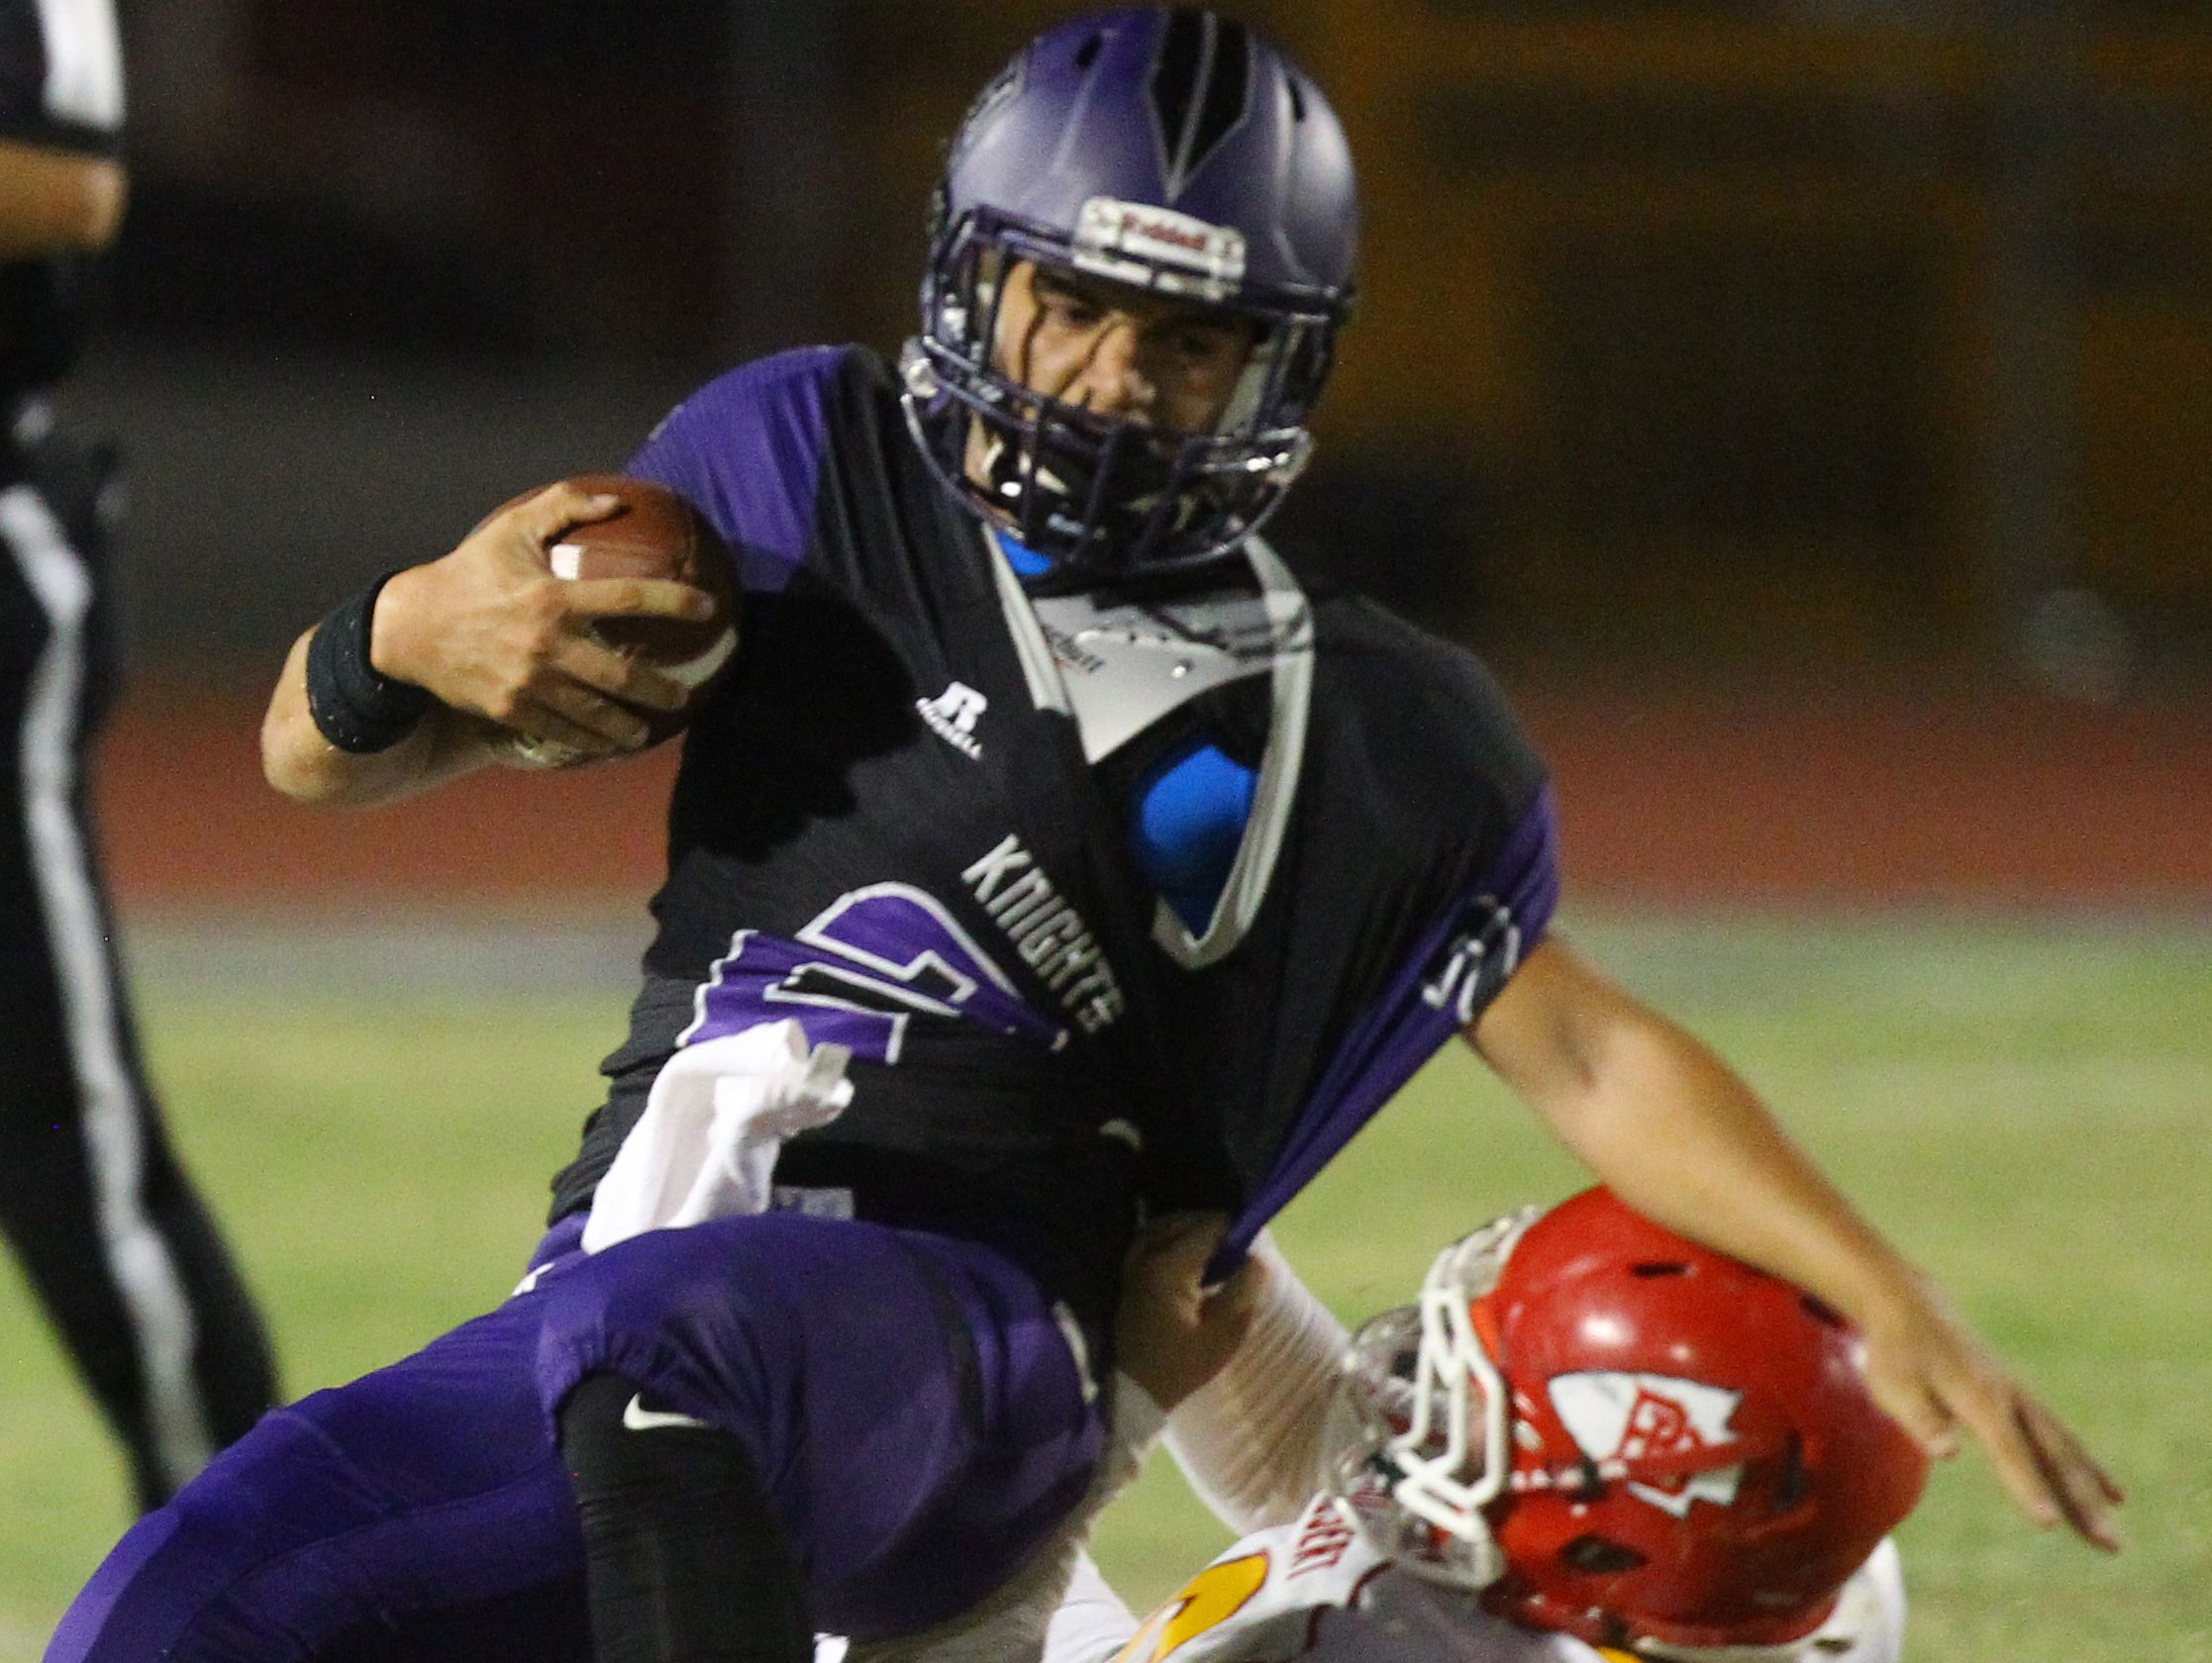 Shadow Hills High School's Seth Morales is sacked by Palm Desert High School's #70 during their game at Indio.